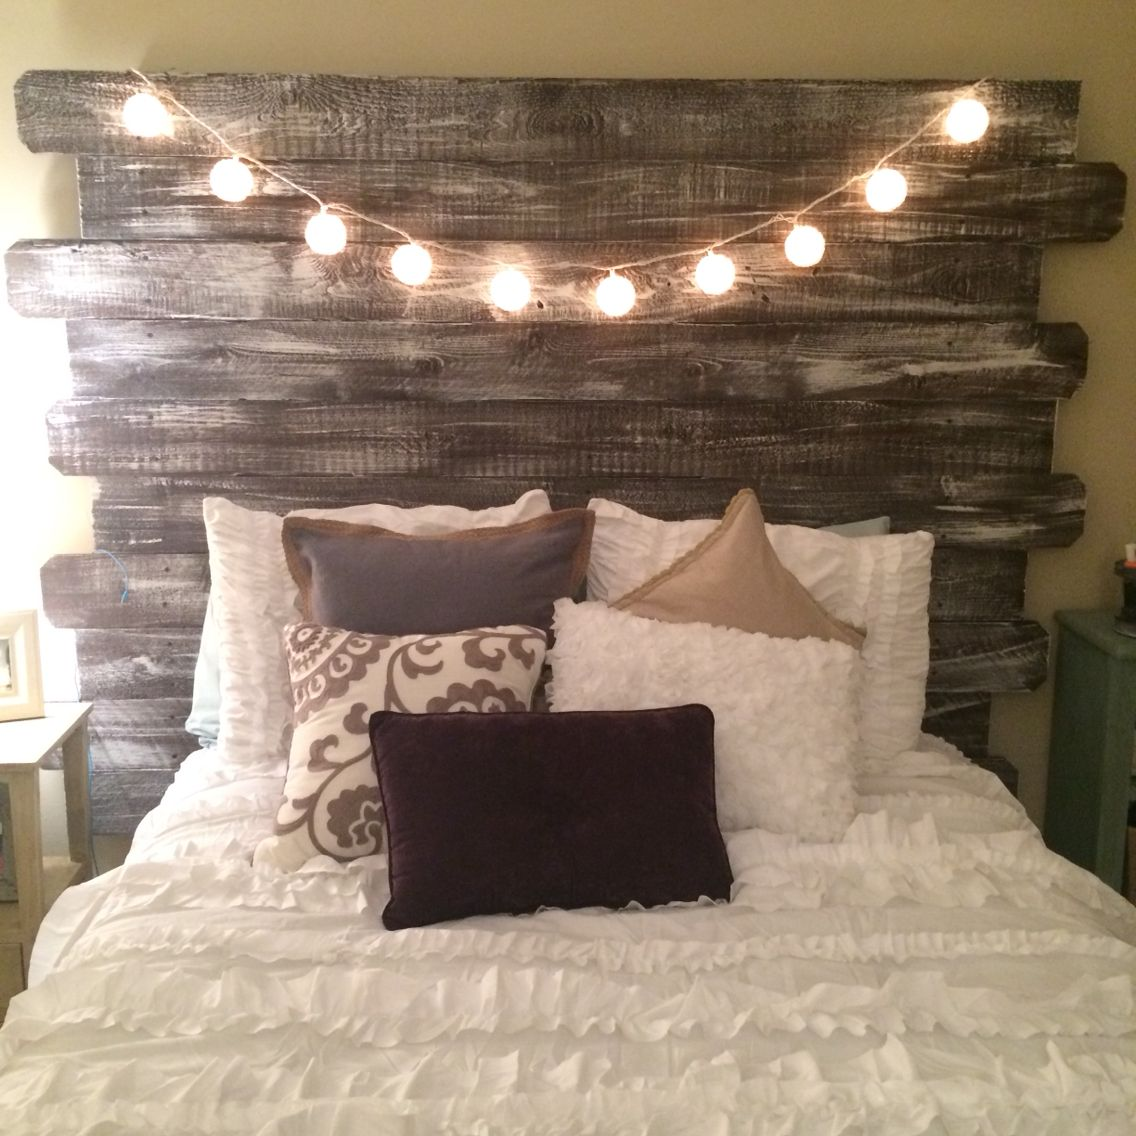 Baby Bedroom Paint Ideas Bedroom Lighting Decoration Vintage Room Design Bedroom Master Bedroom Bed Size: Whitewashed Rustic Headboard Made From Fenceposts